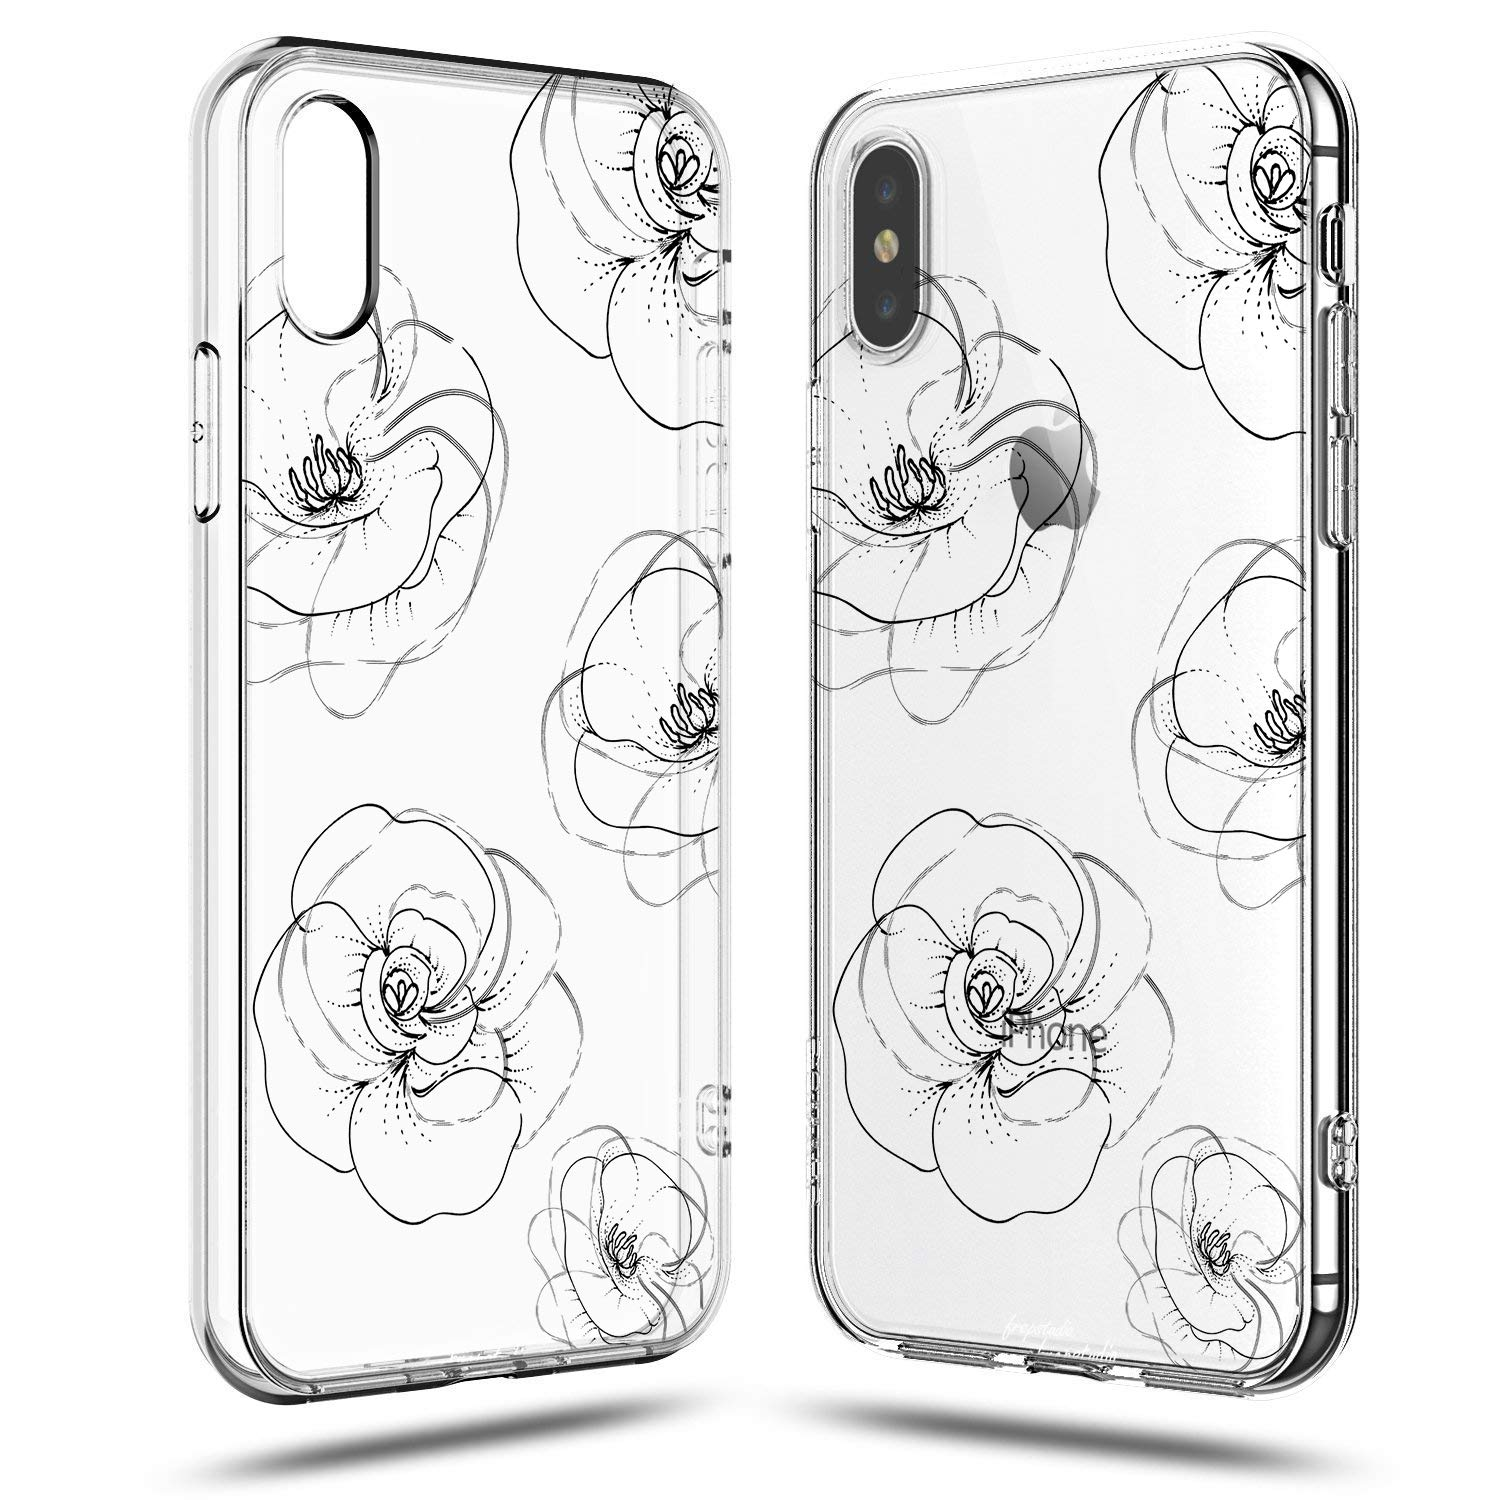 iPhone XR Roses Flowers Case,Girls Women Trendy Simple Line-Drawing Elegant Classical Black Roses Floral Daisy Blooms Less is More Summer Chic Cute Clear Soft Case Compatible for iPhone XR